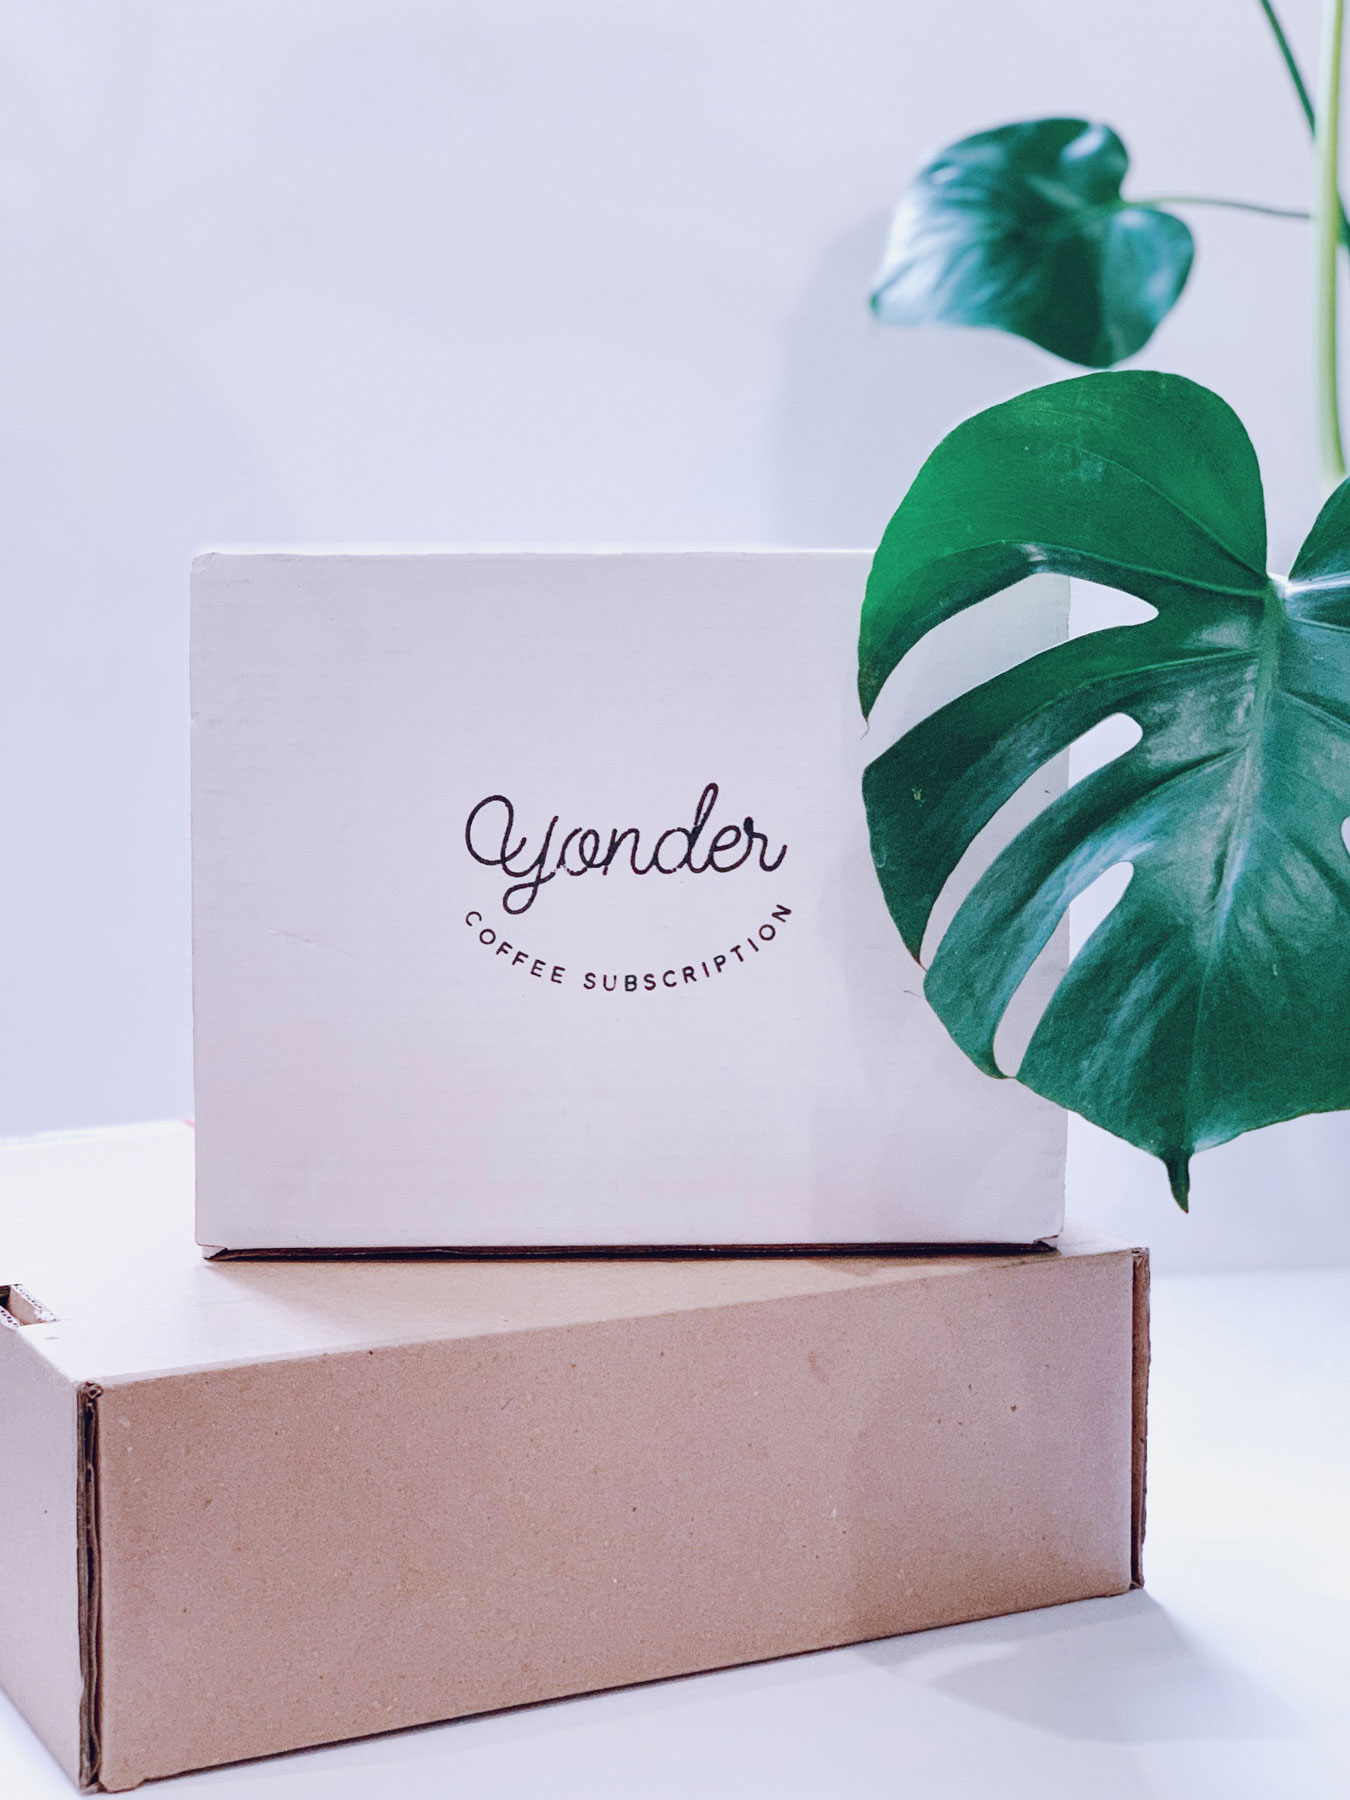 Yonder Coffee Packaging with Plant